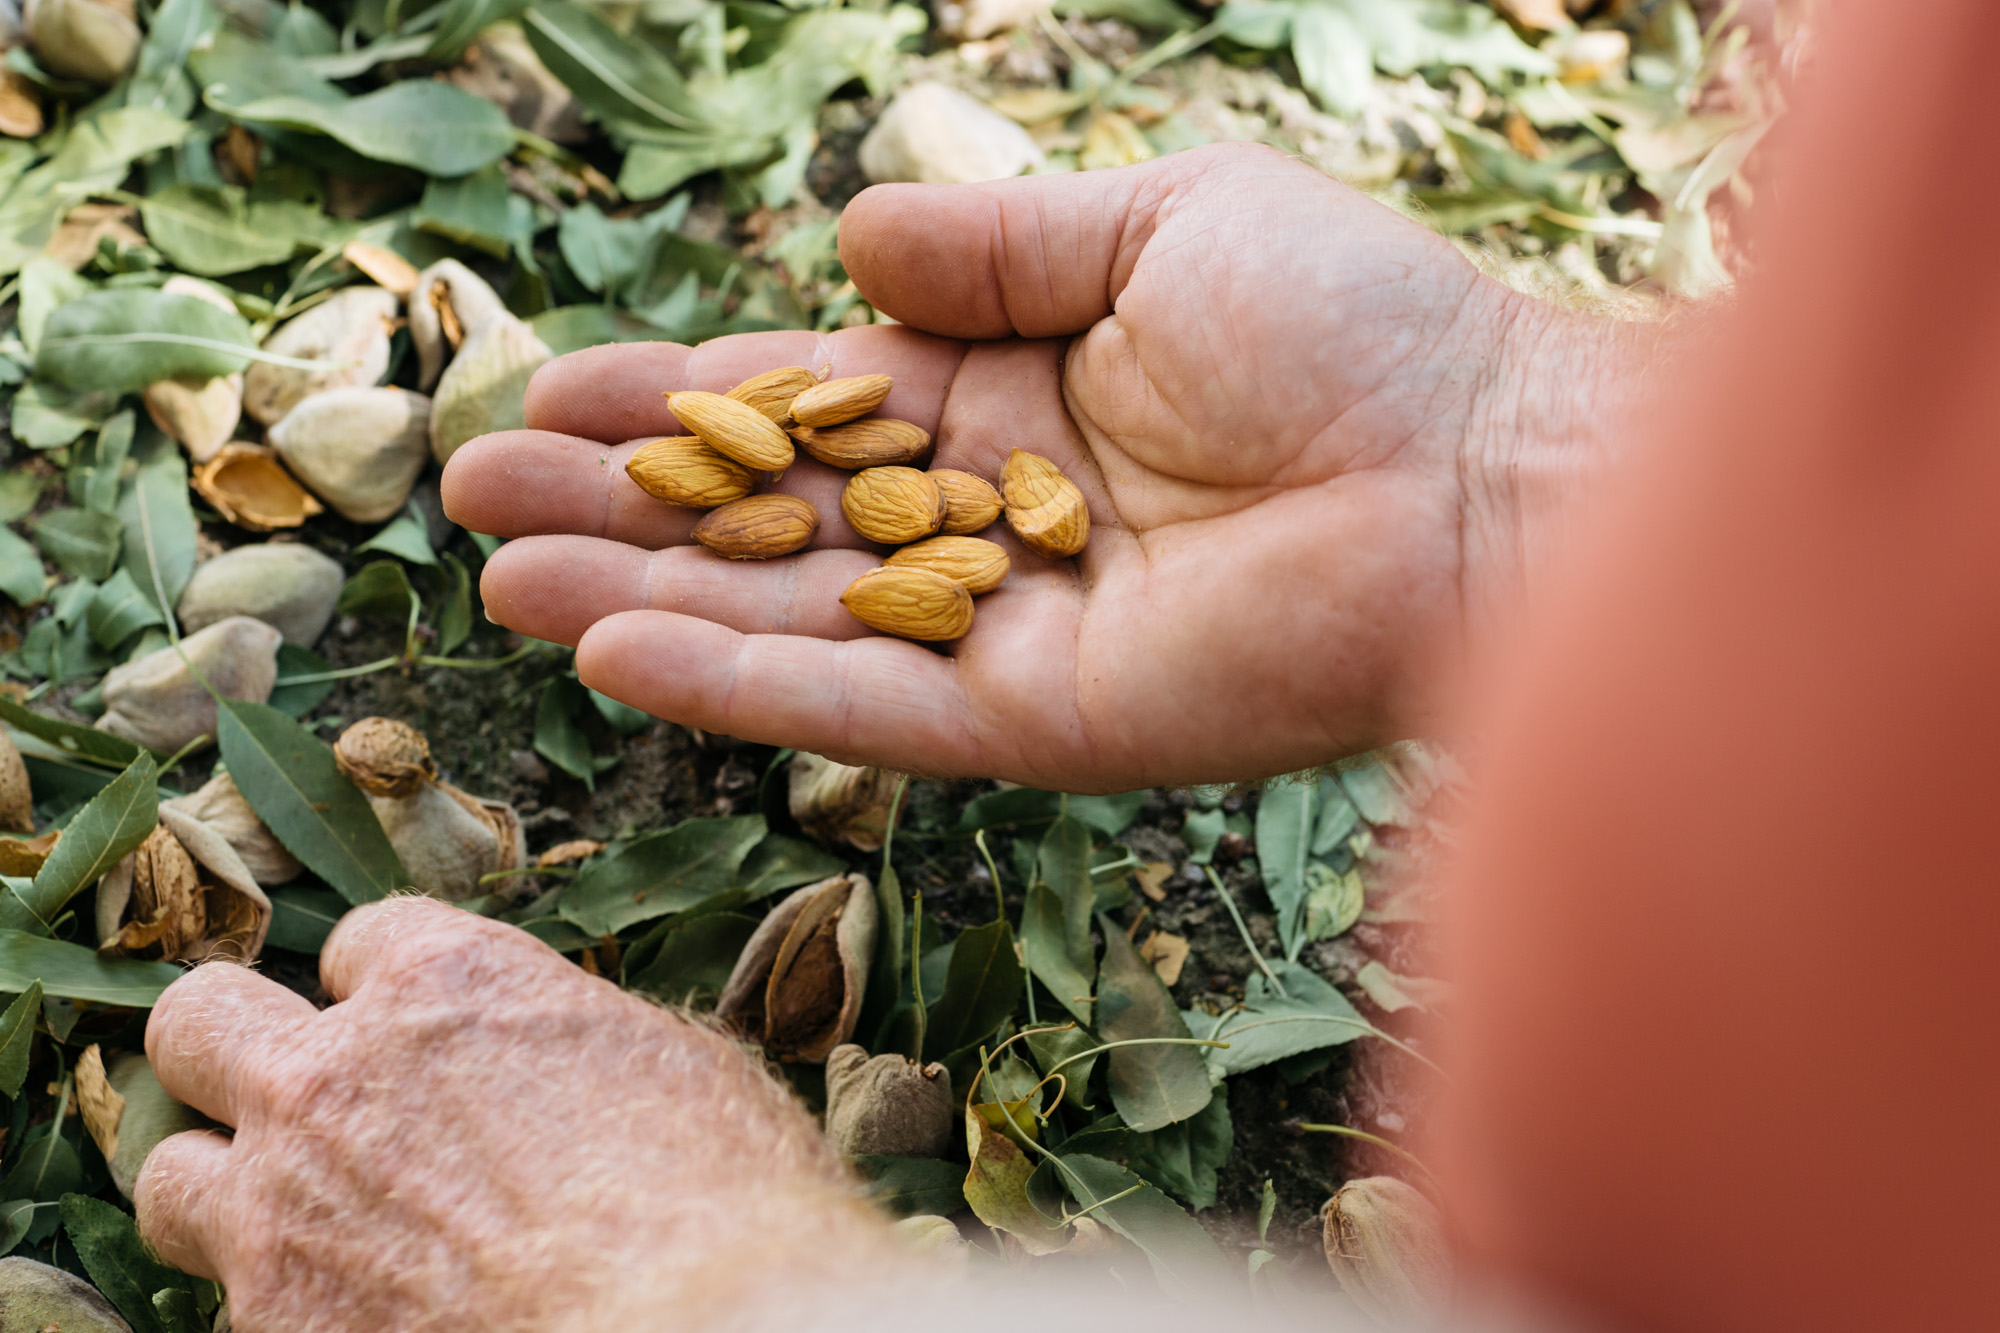 almond-farmer-food-growers-photographers